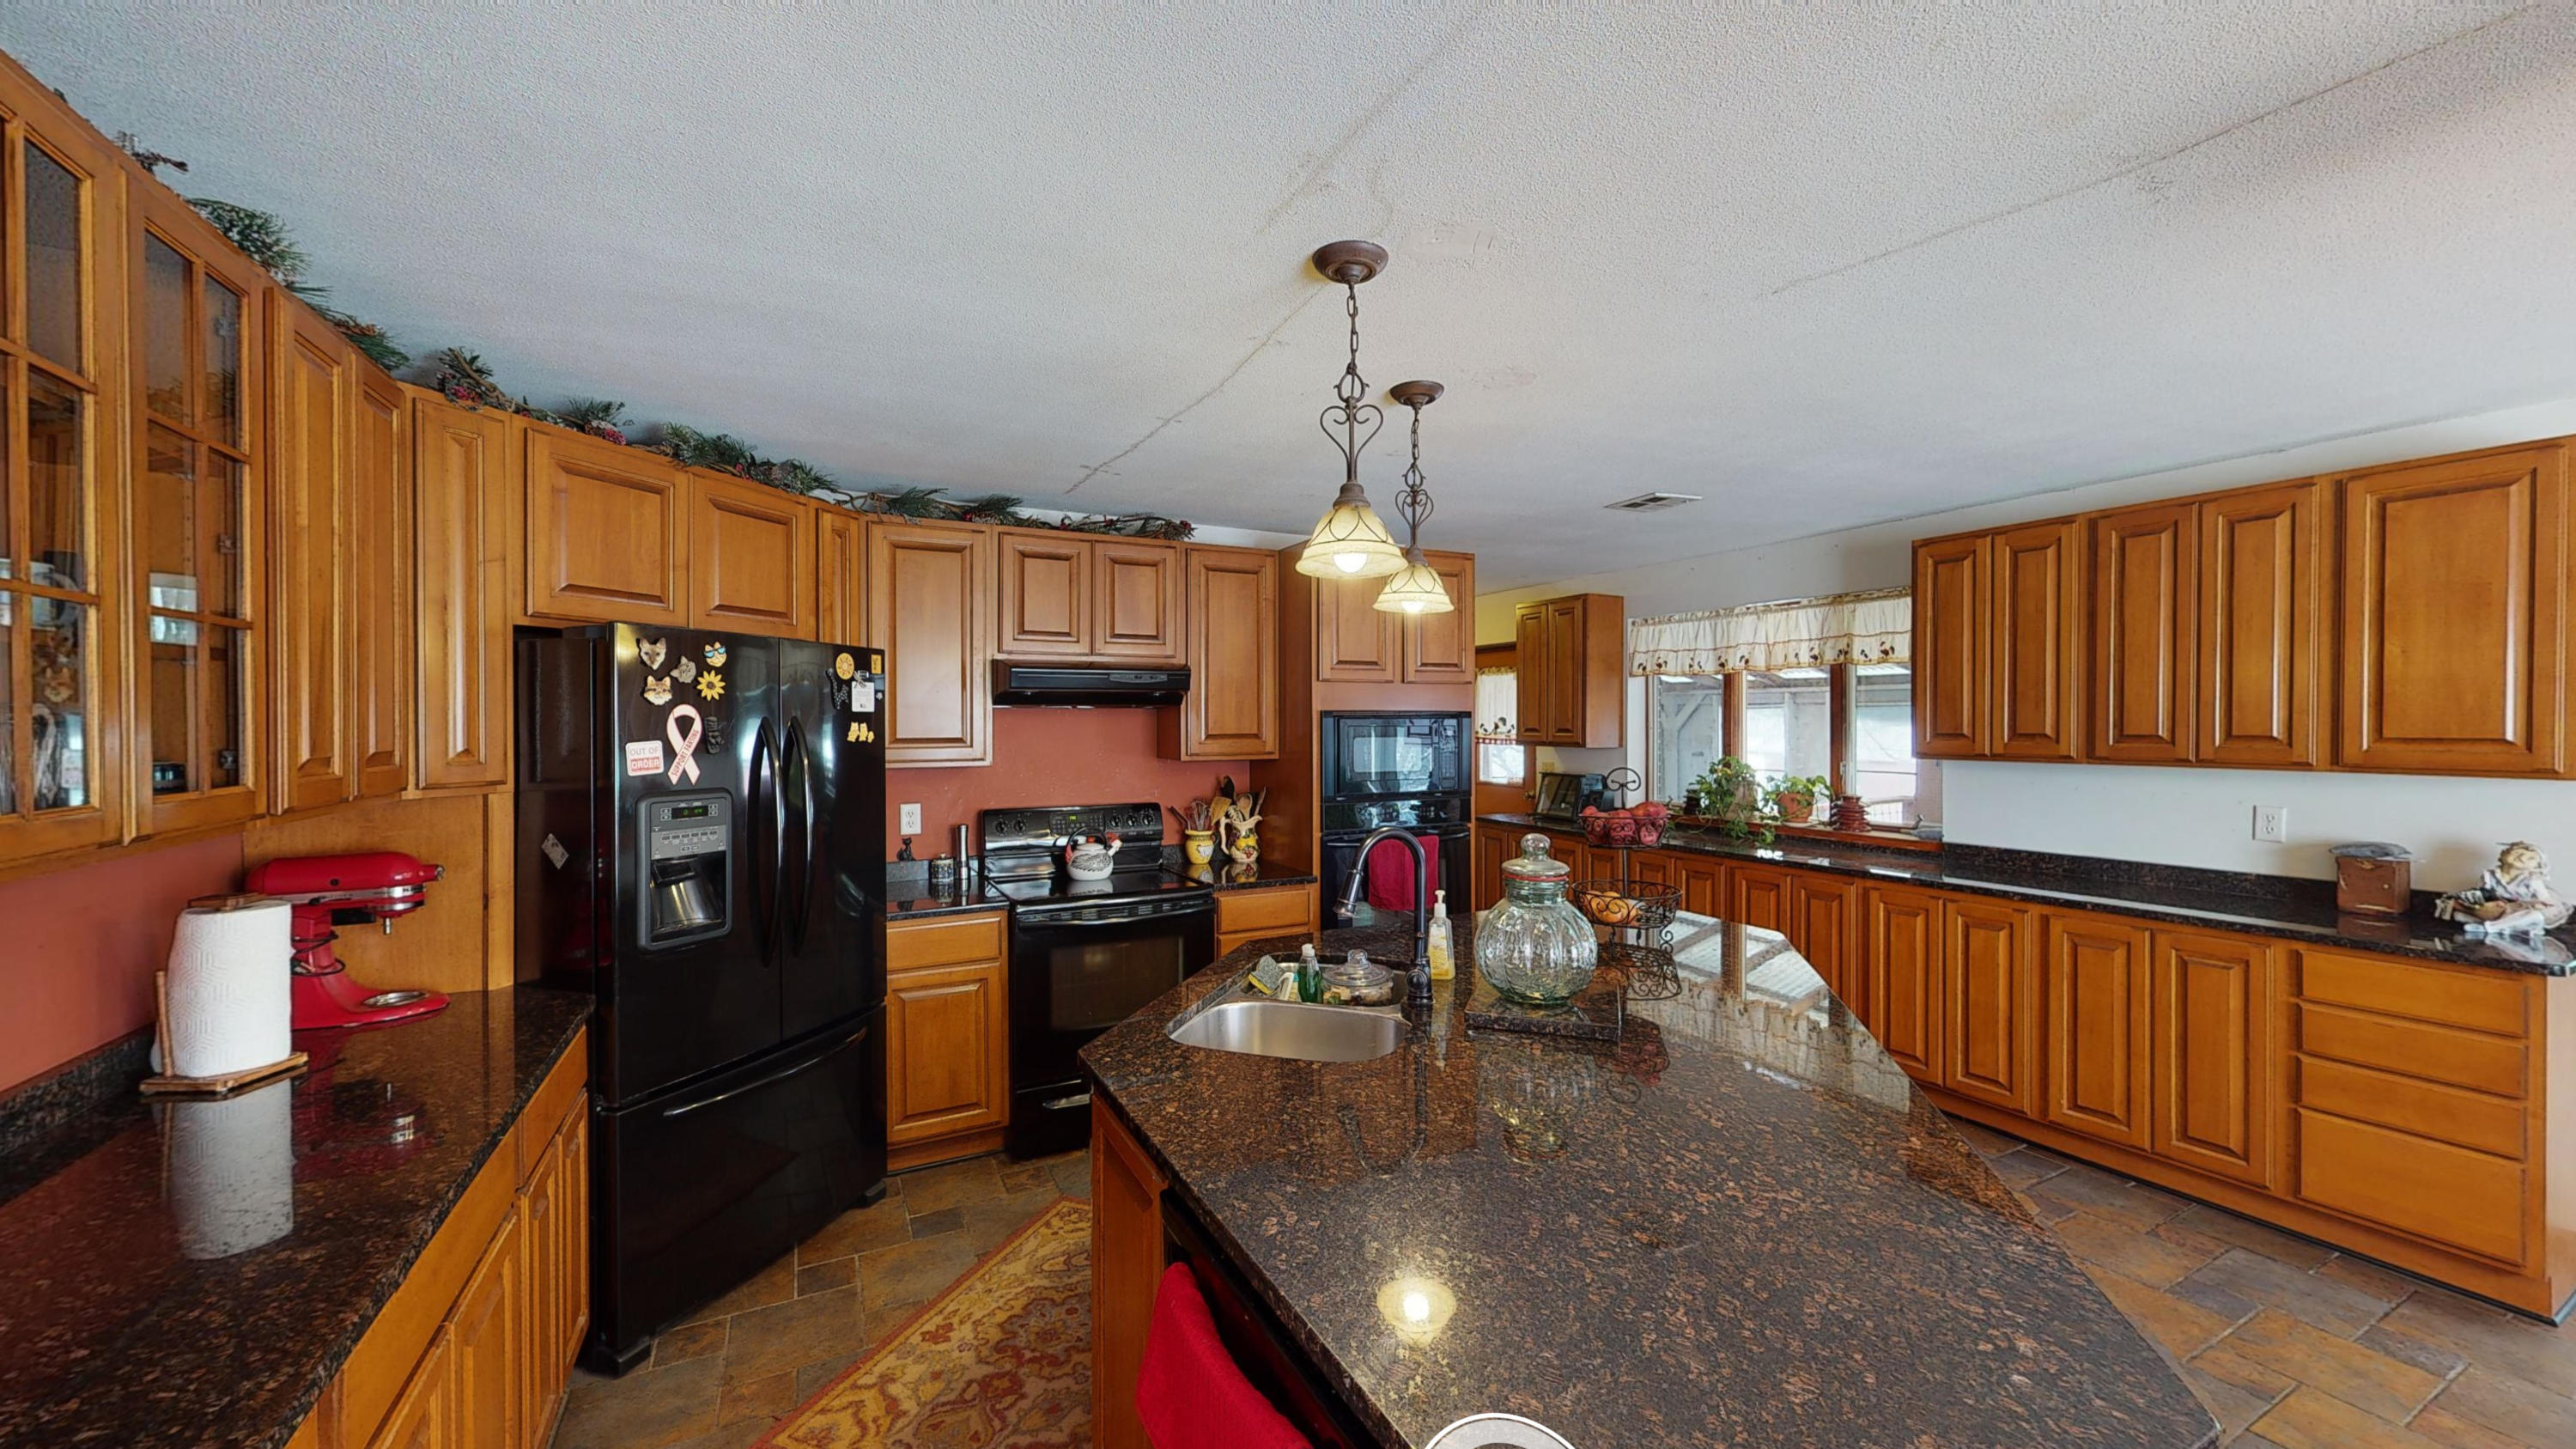 10643 State Highway 131 5 acres, Forest, Wisconsin 54664, 4 Bedrooms Bedrooms, ,2 BathroomsBathrooms,Single-family,For Sale,State Highway 131 5 acres,1699377